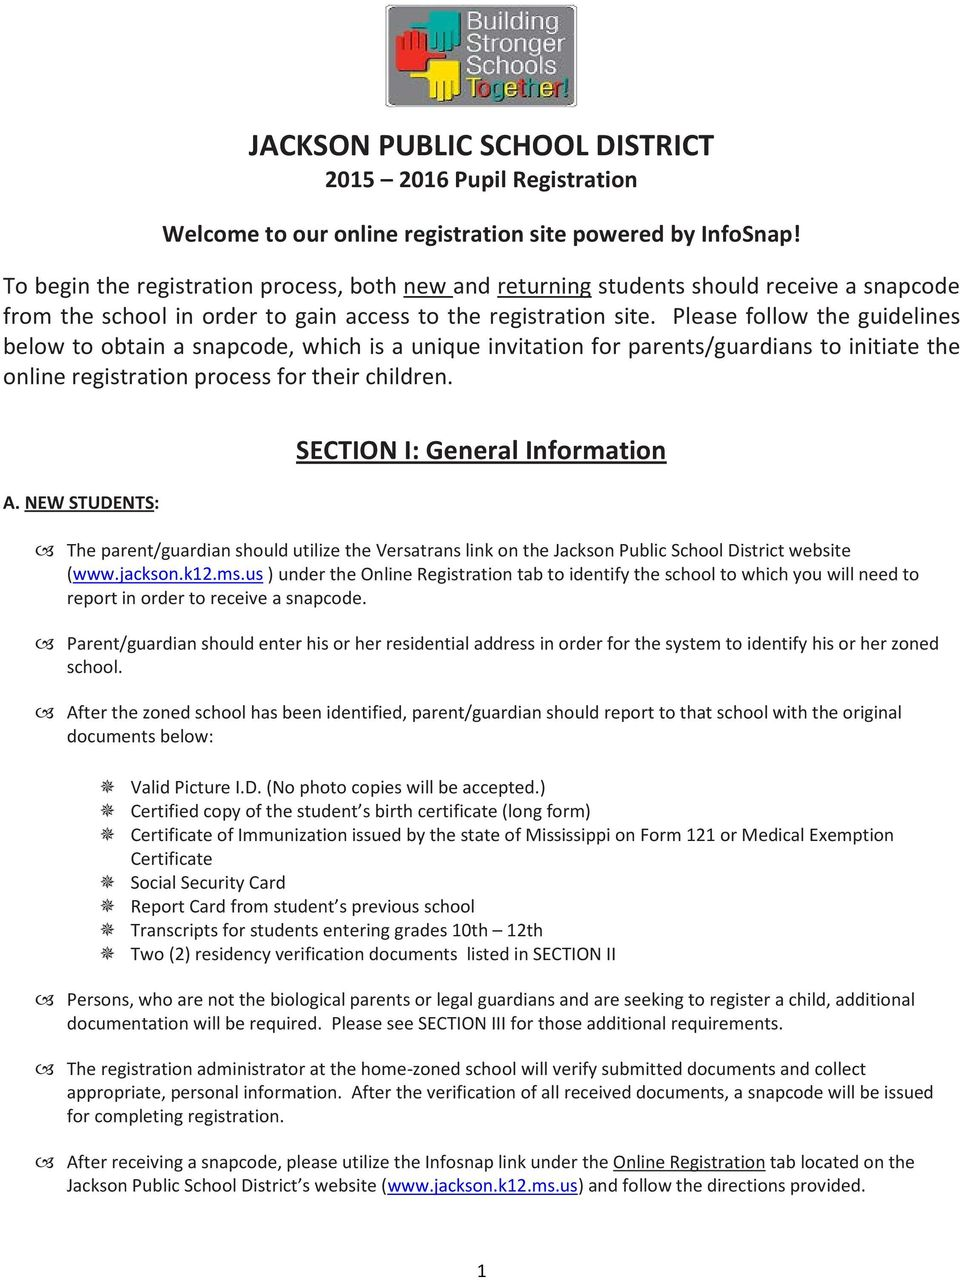 Jackson Public School District Pupil Registration Pdf